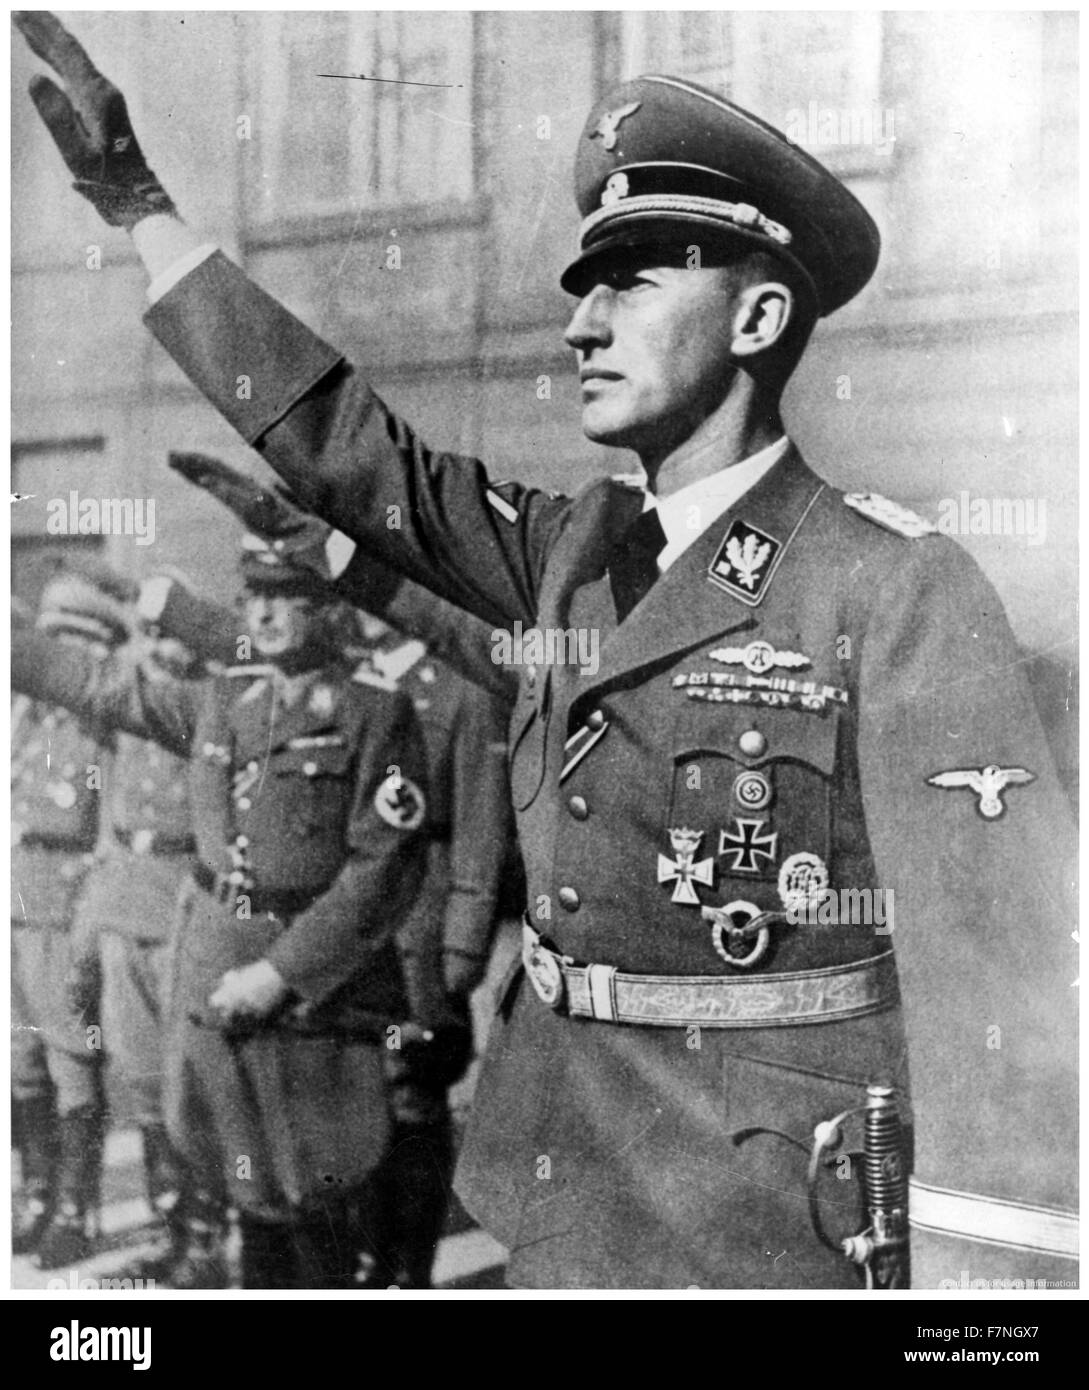 Reinhard Heydrich Biography: The First In-depth Look at a Nazi 'God of Death'